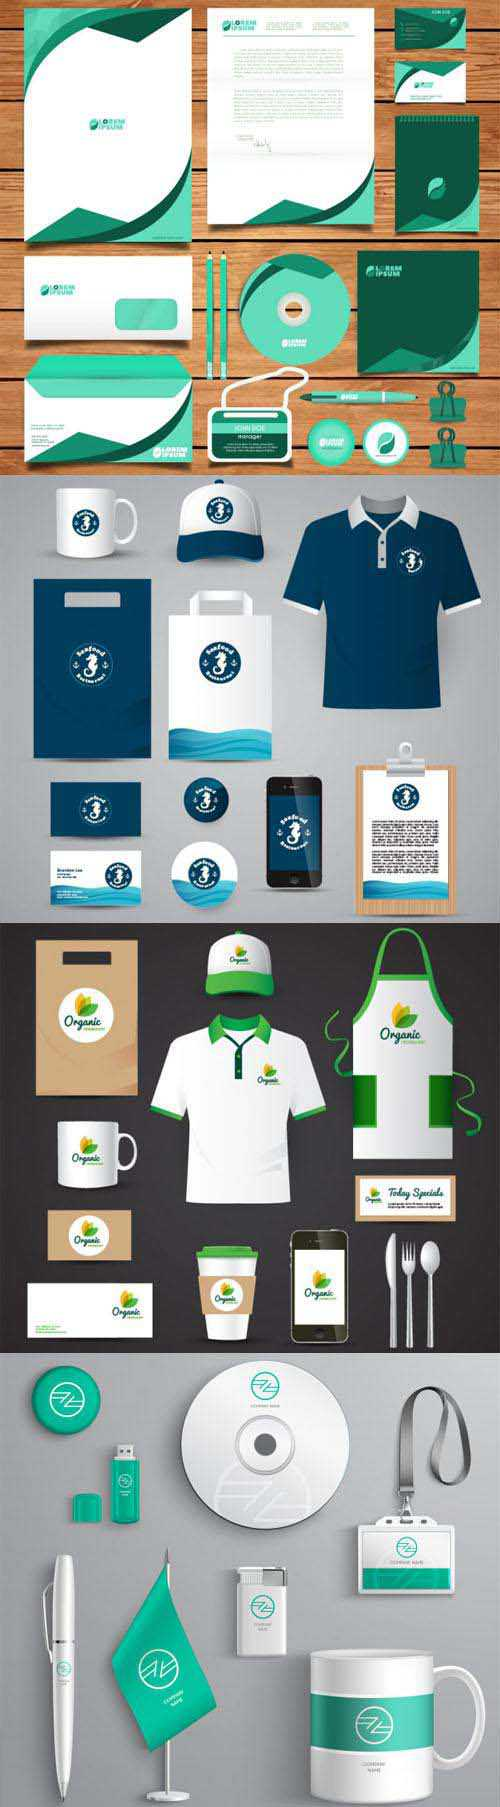 16 Corporate Identity & Stationery Collection in Vector